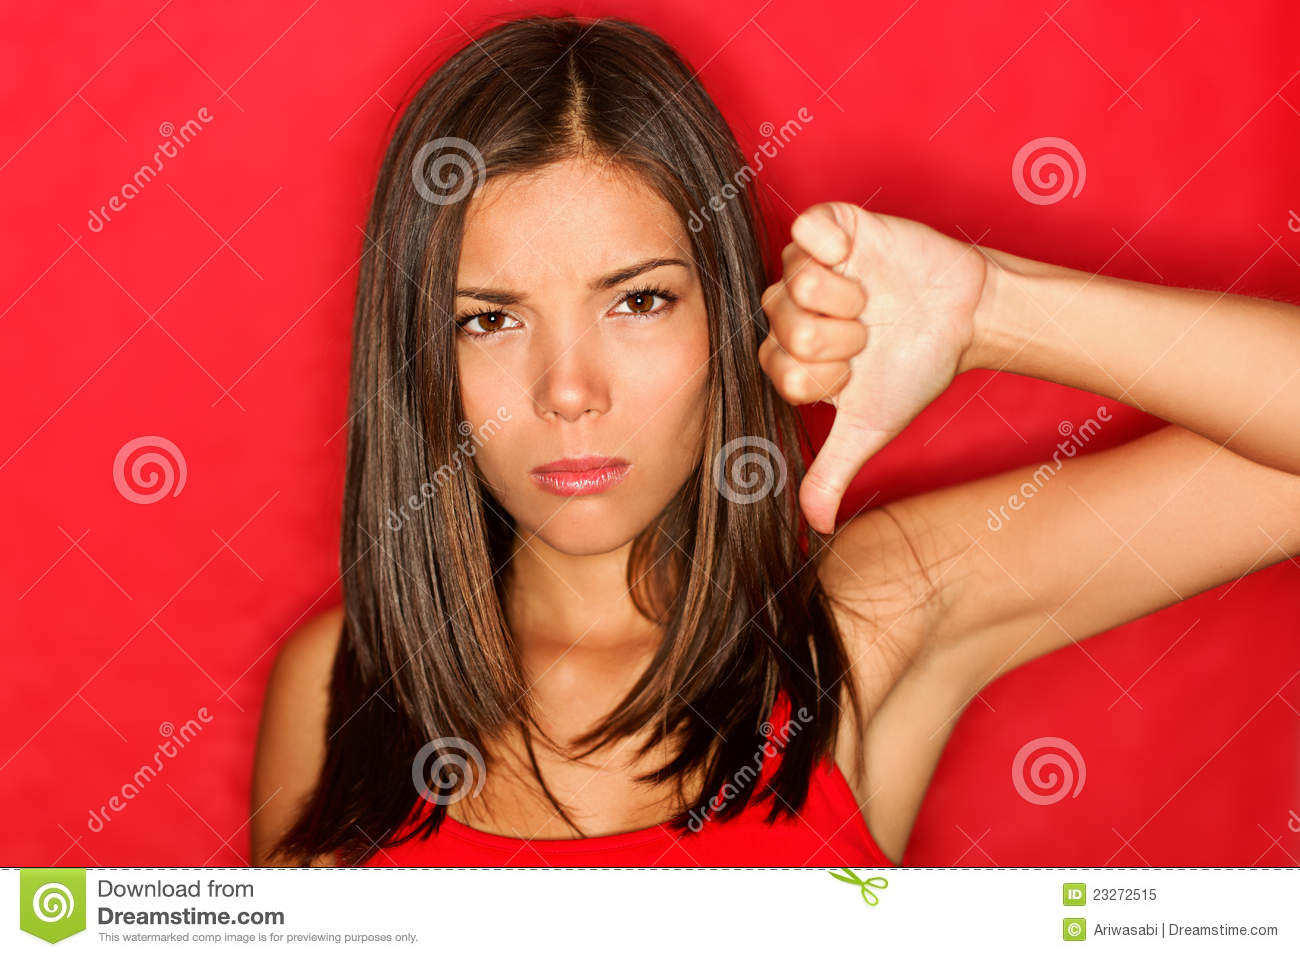 Unhappy thumbs down woman